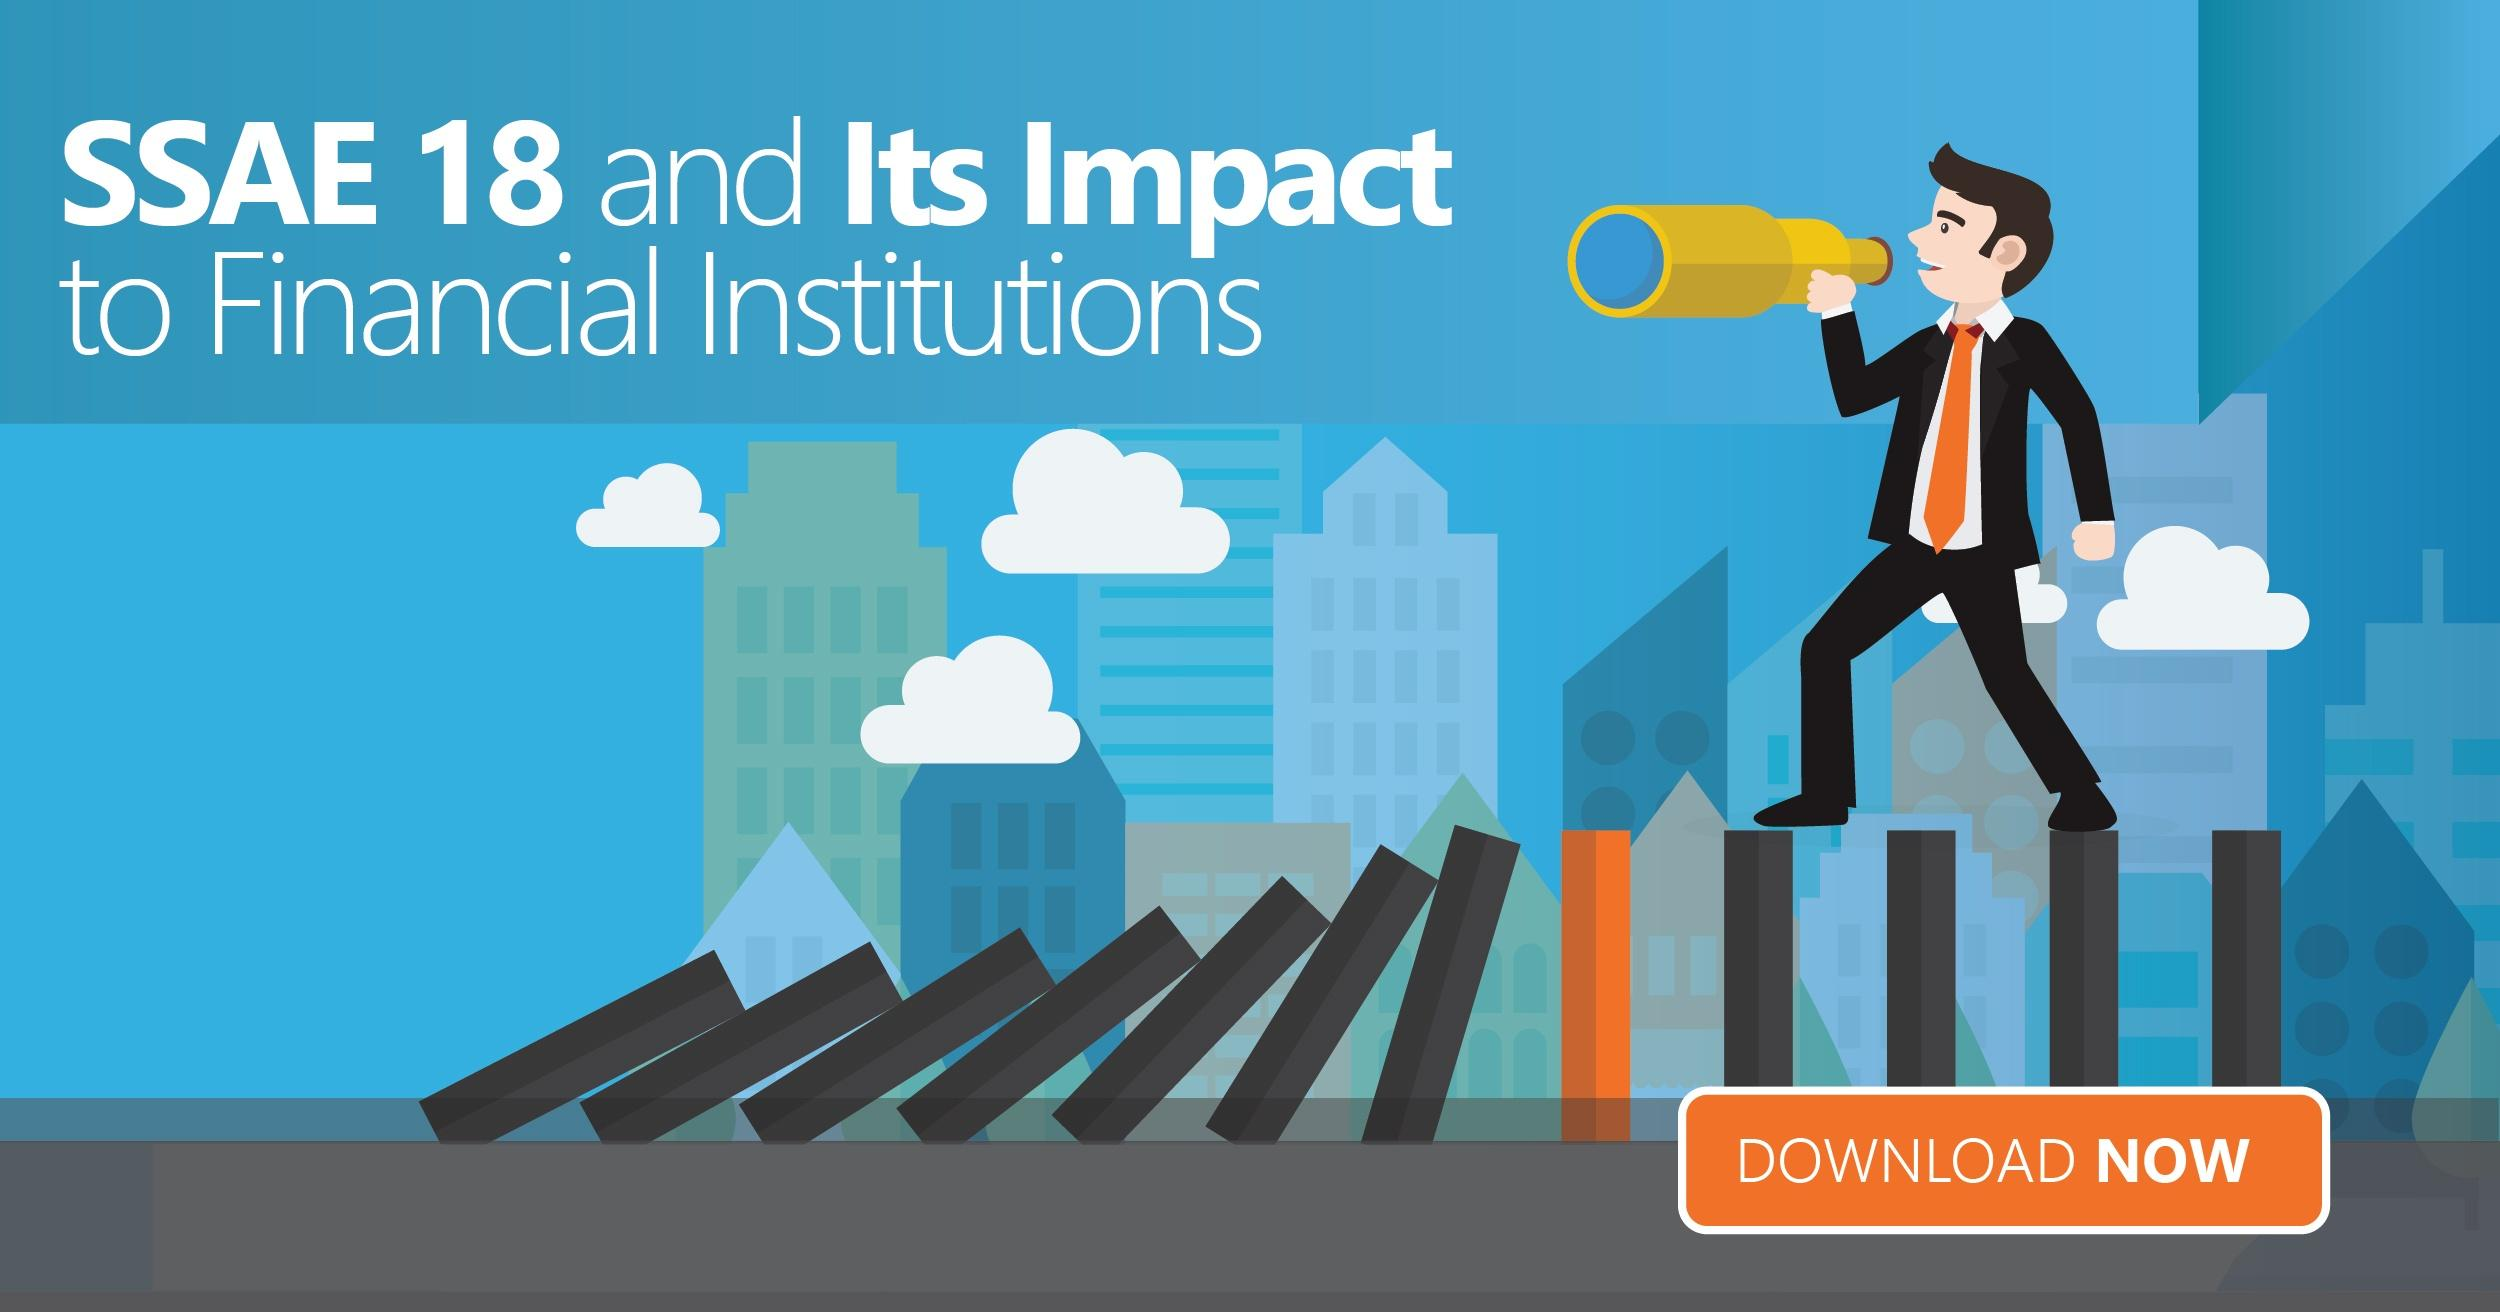 SSAE 18 and Its Impact to Financial Institutions